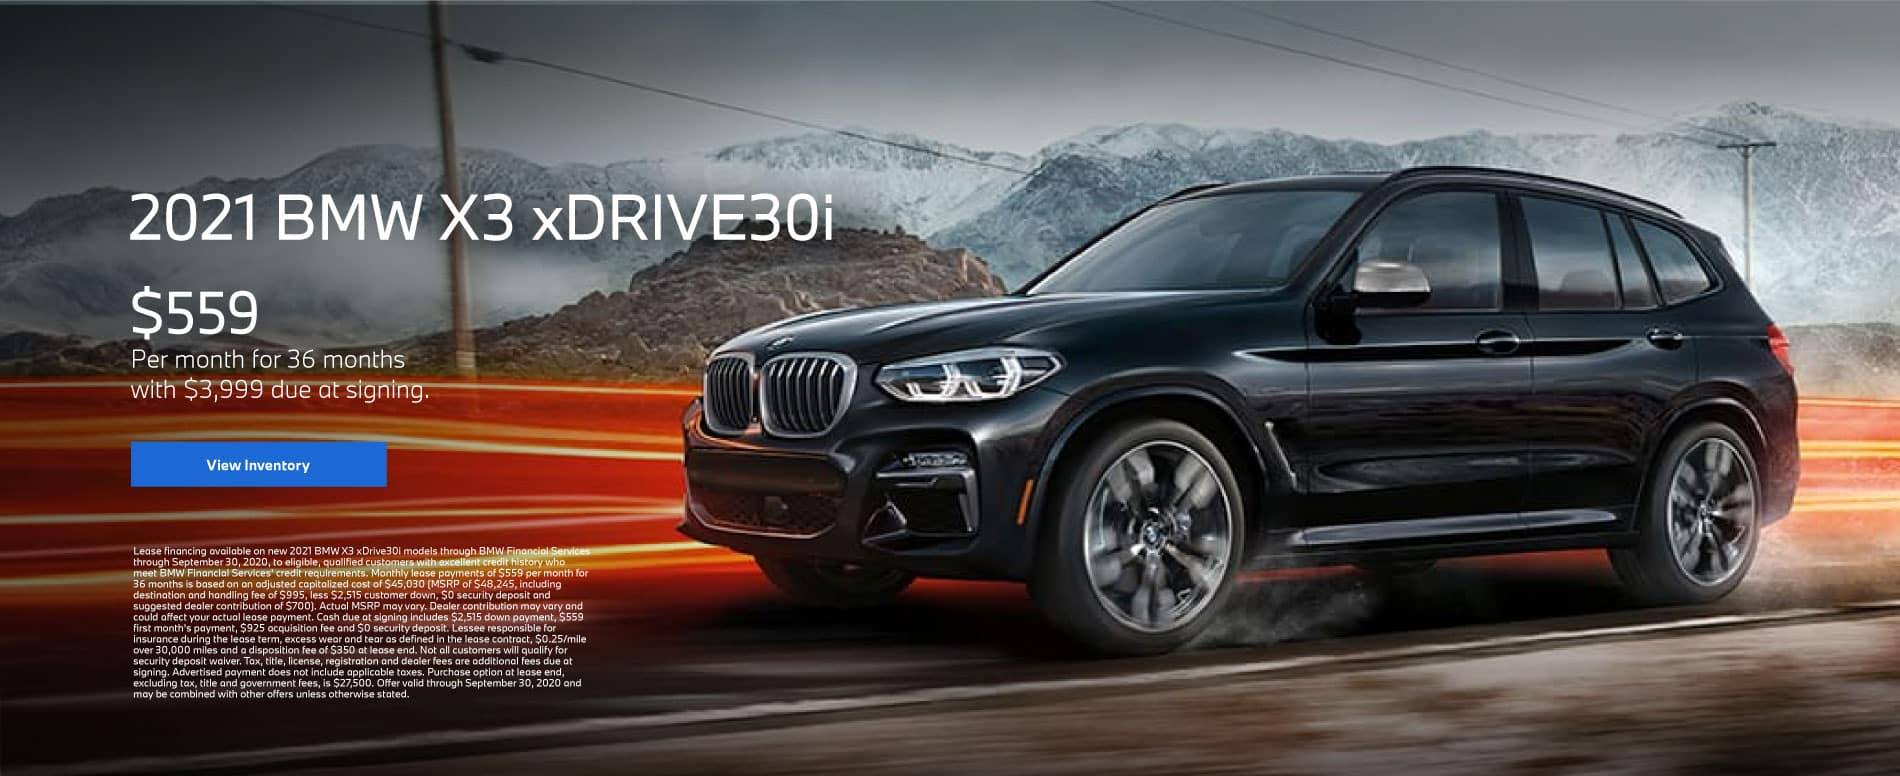 2021 BMW X3 xDRIVE30i - Lease for $559 Per Month for 36 Months - $3,999 Due At Signing. Click for offer.